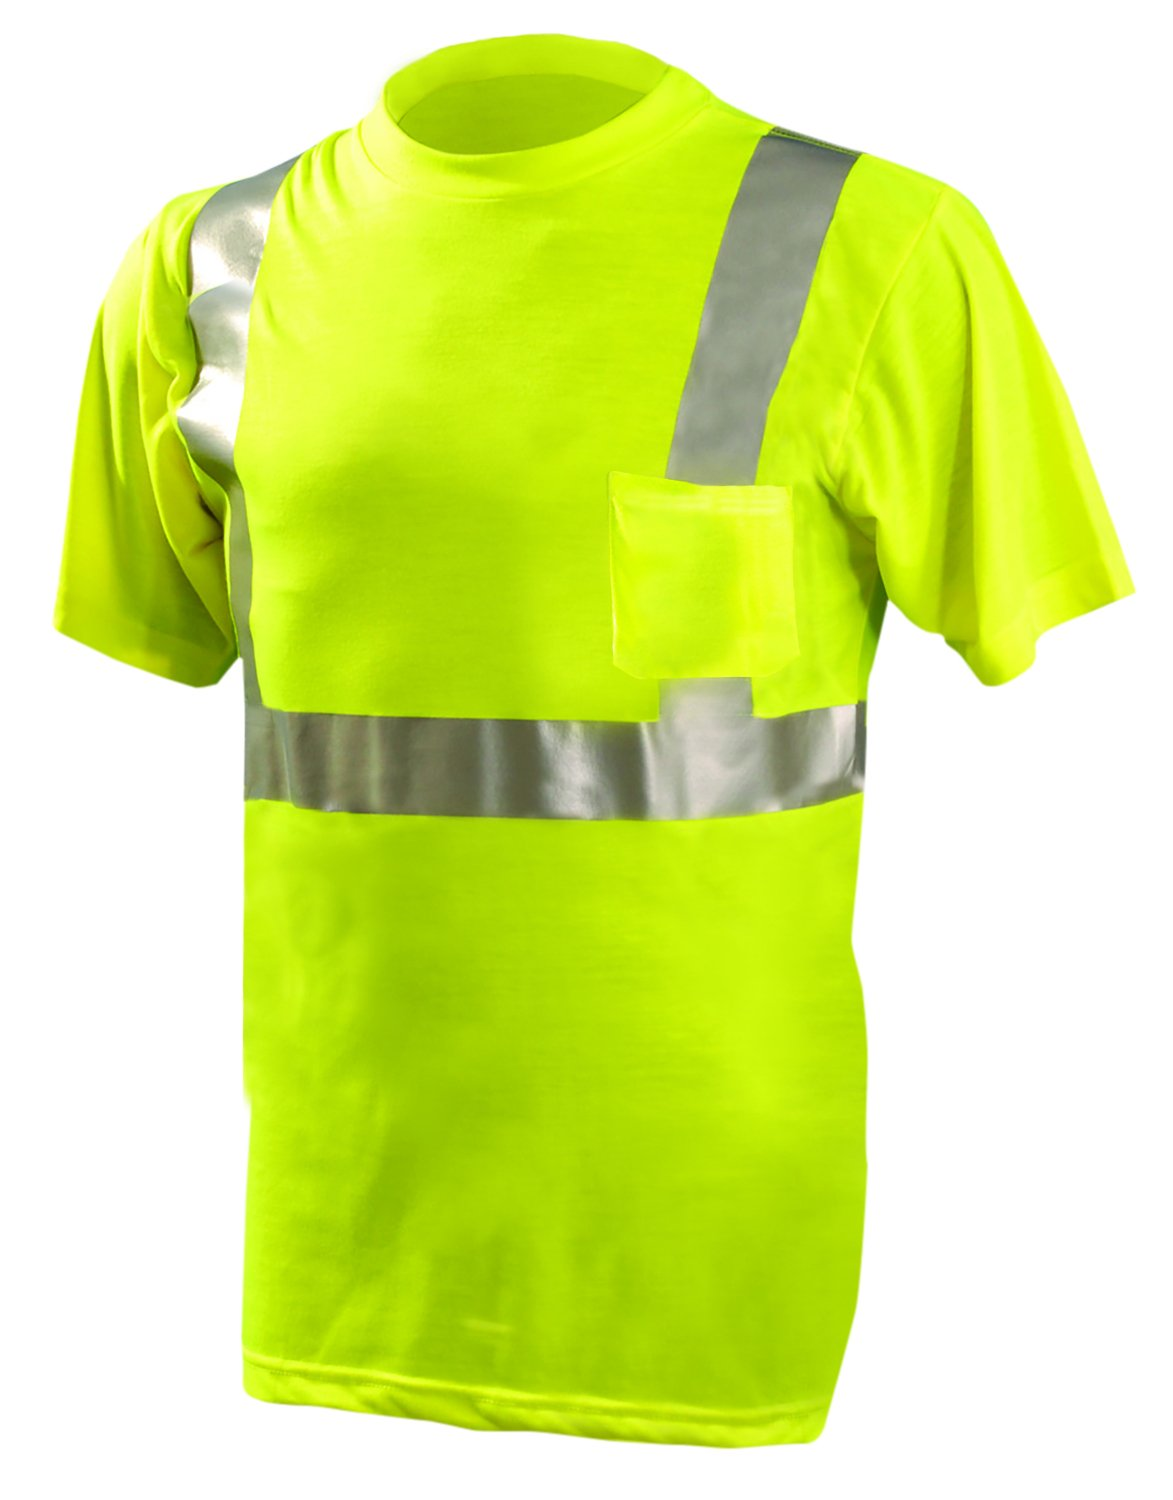 OccuNomix LUX-SSETP2-YL ANSI Class 2 Standard Wicking Short Sleeve T-shirt, Large, Yellow